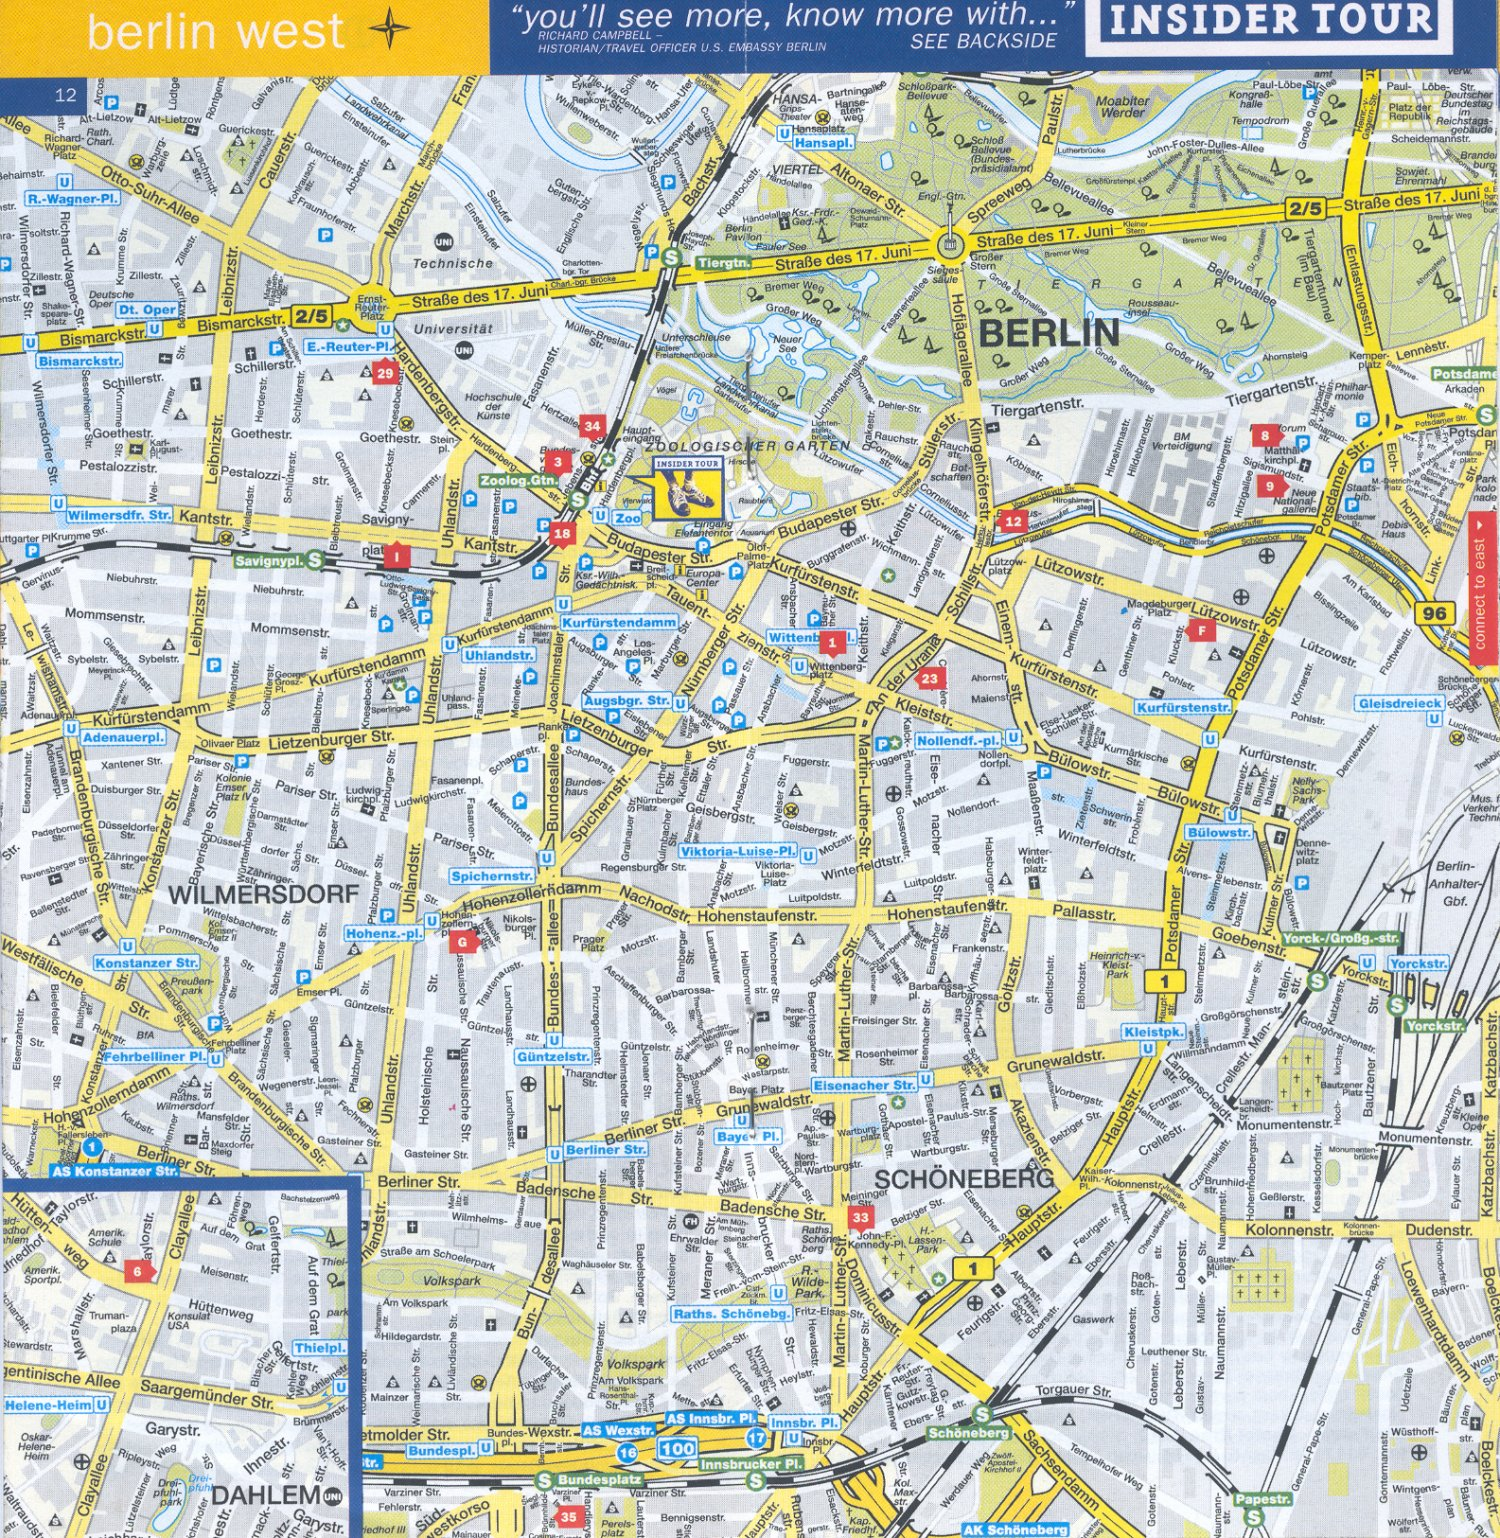 Guide To Bach Tour Berlin Maps